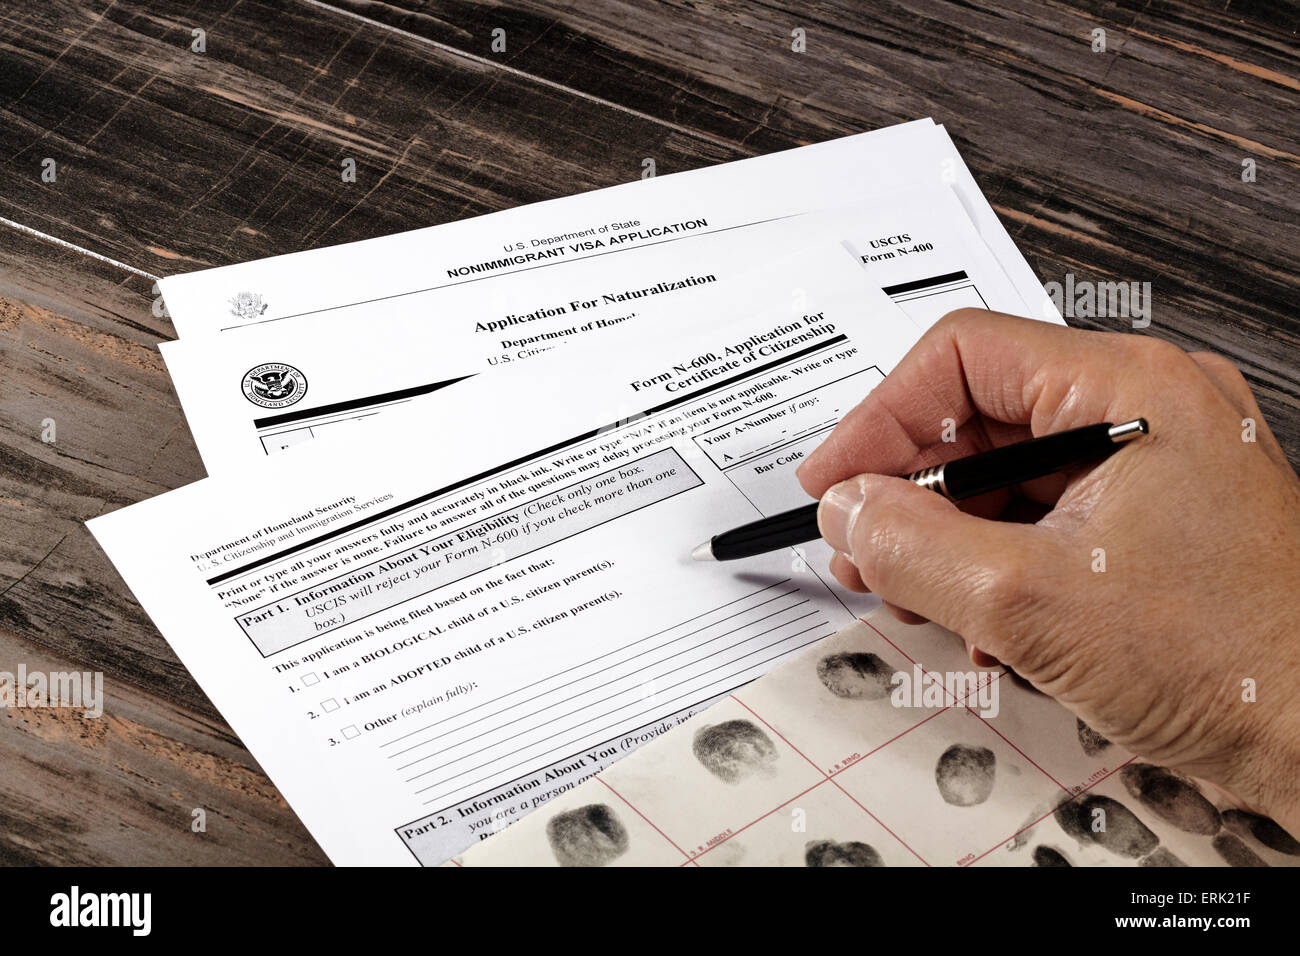 Immigration And Naturalization Stock Photos & Immigration